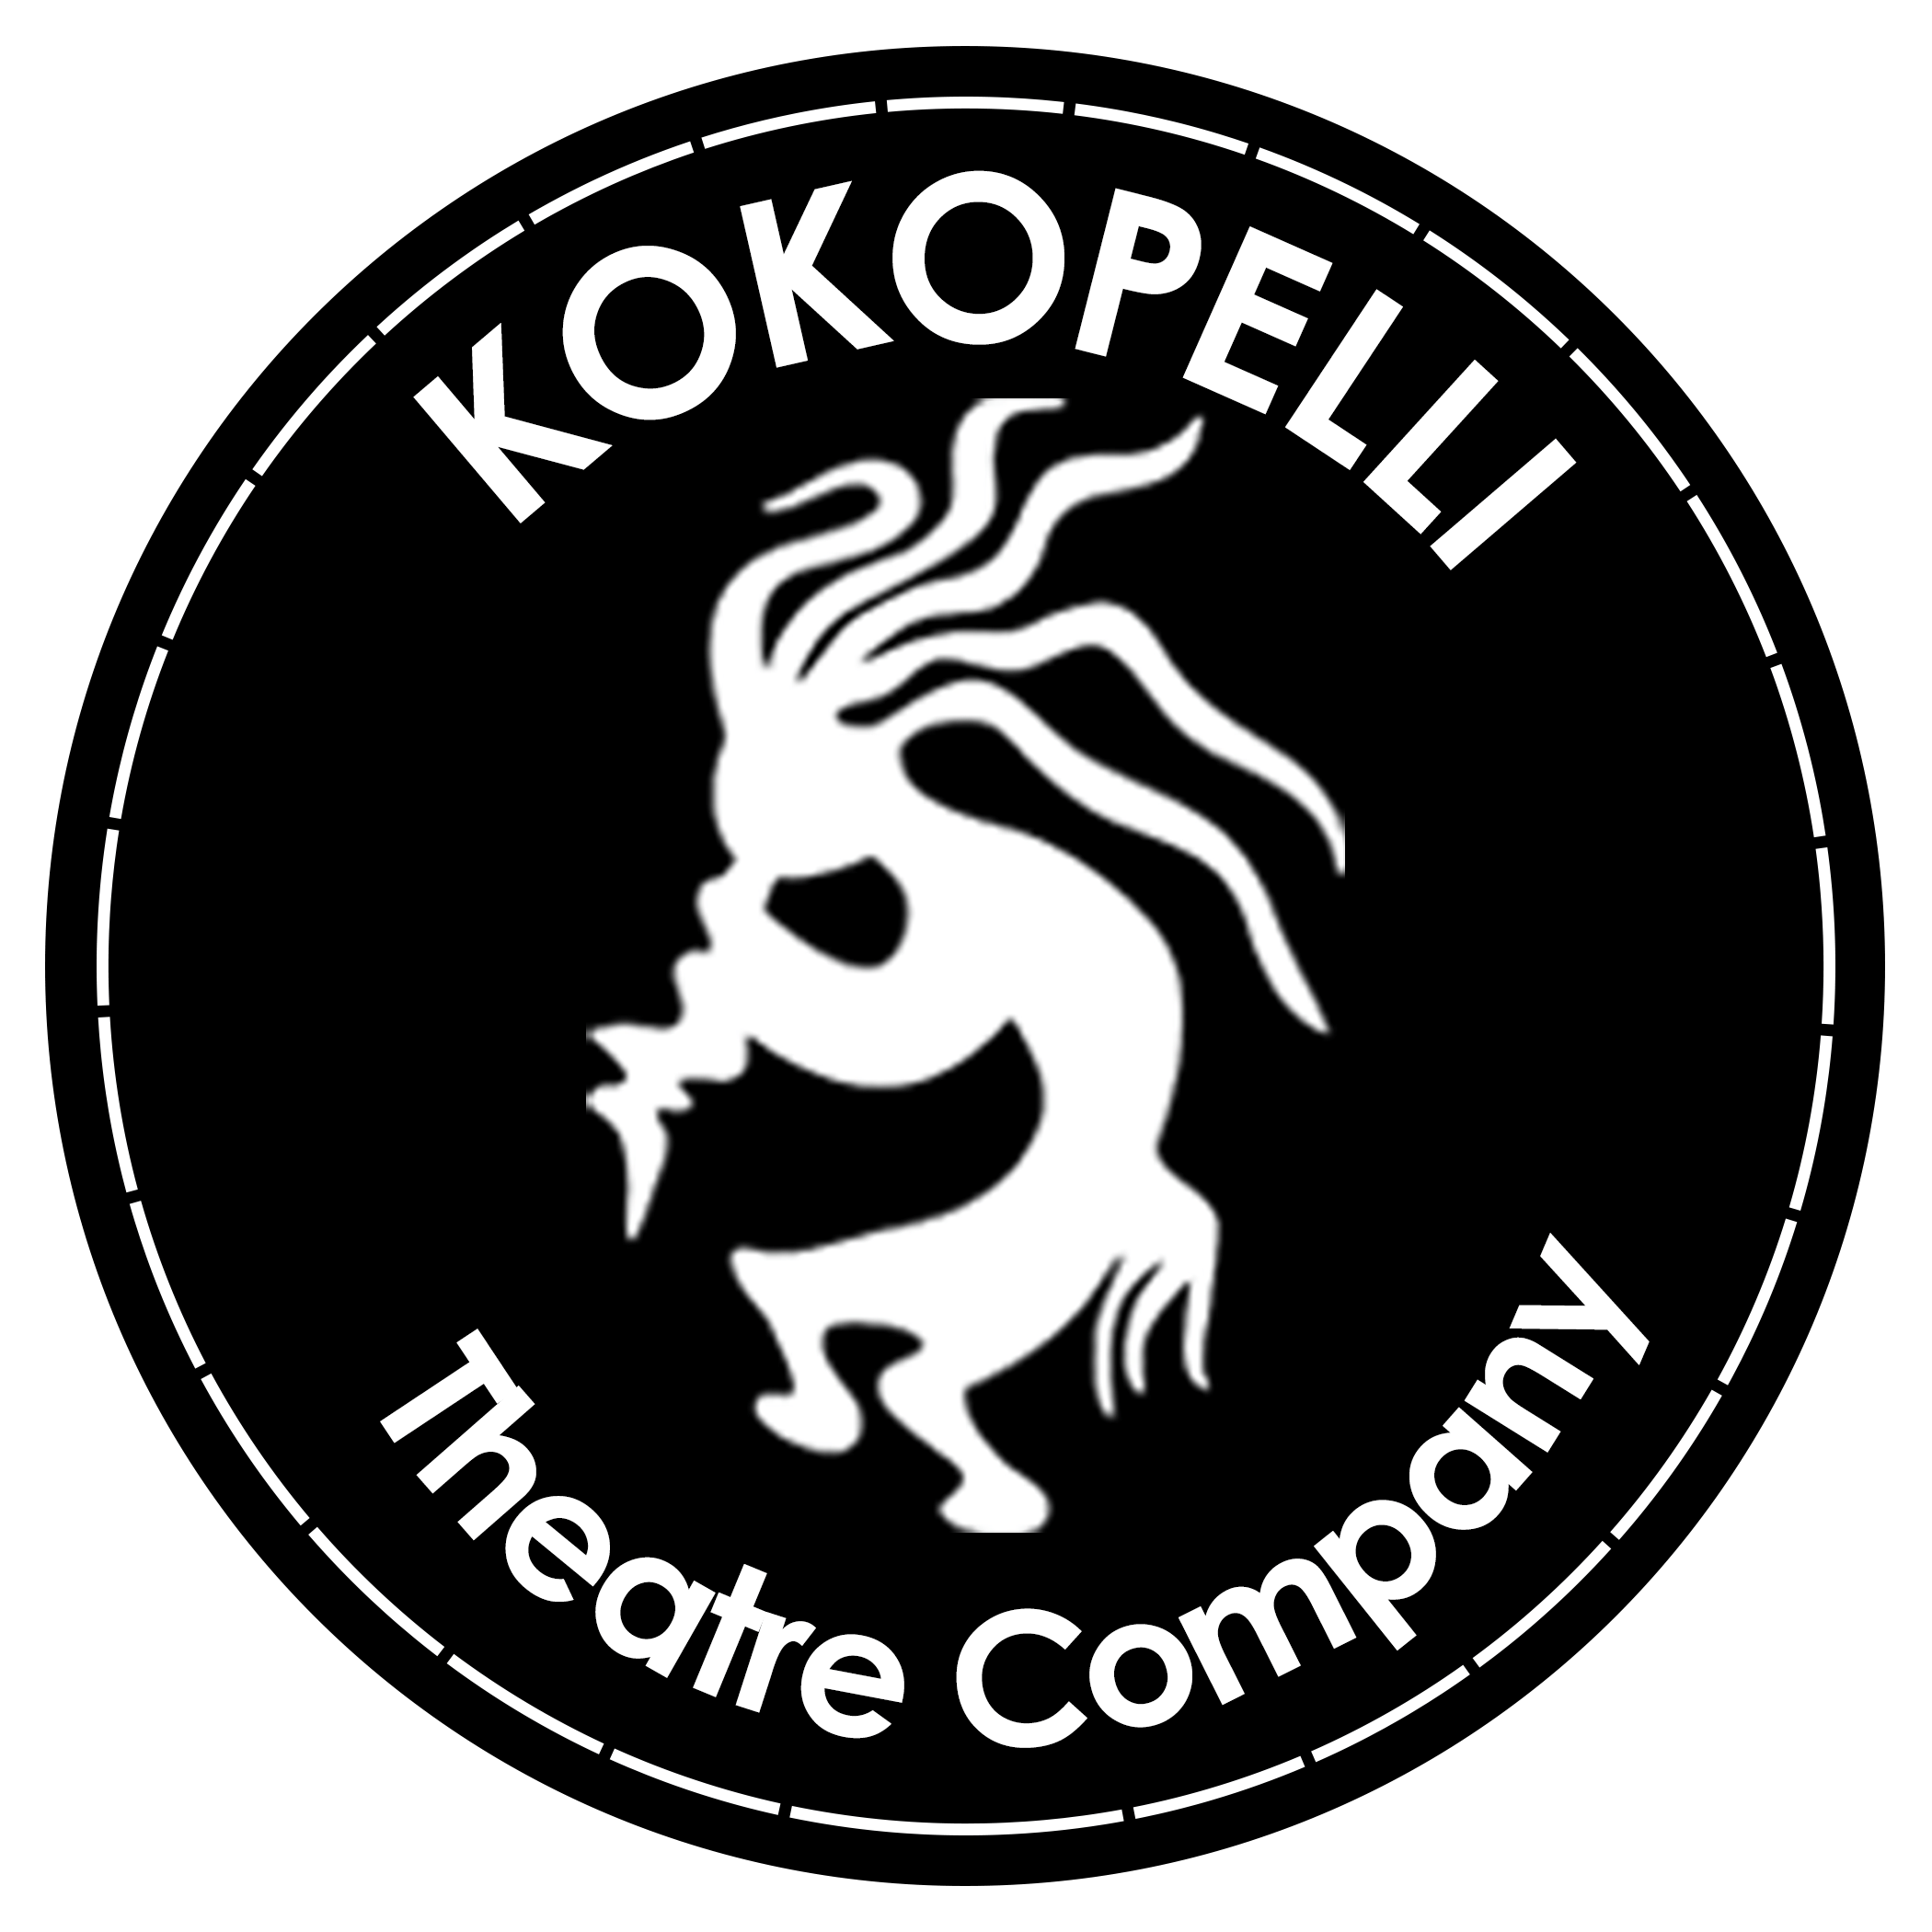 kokopelli circle stamp